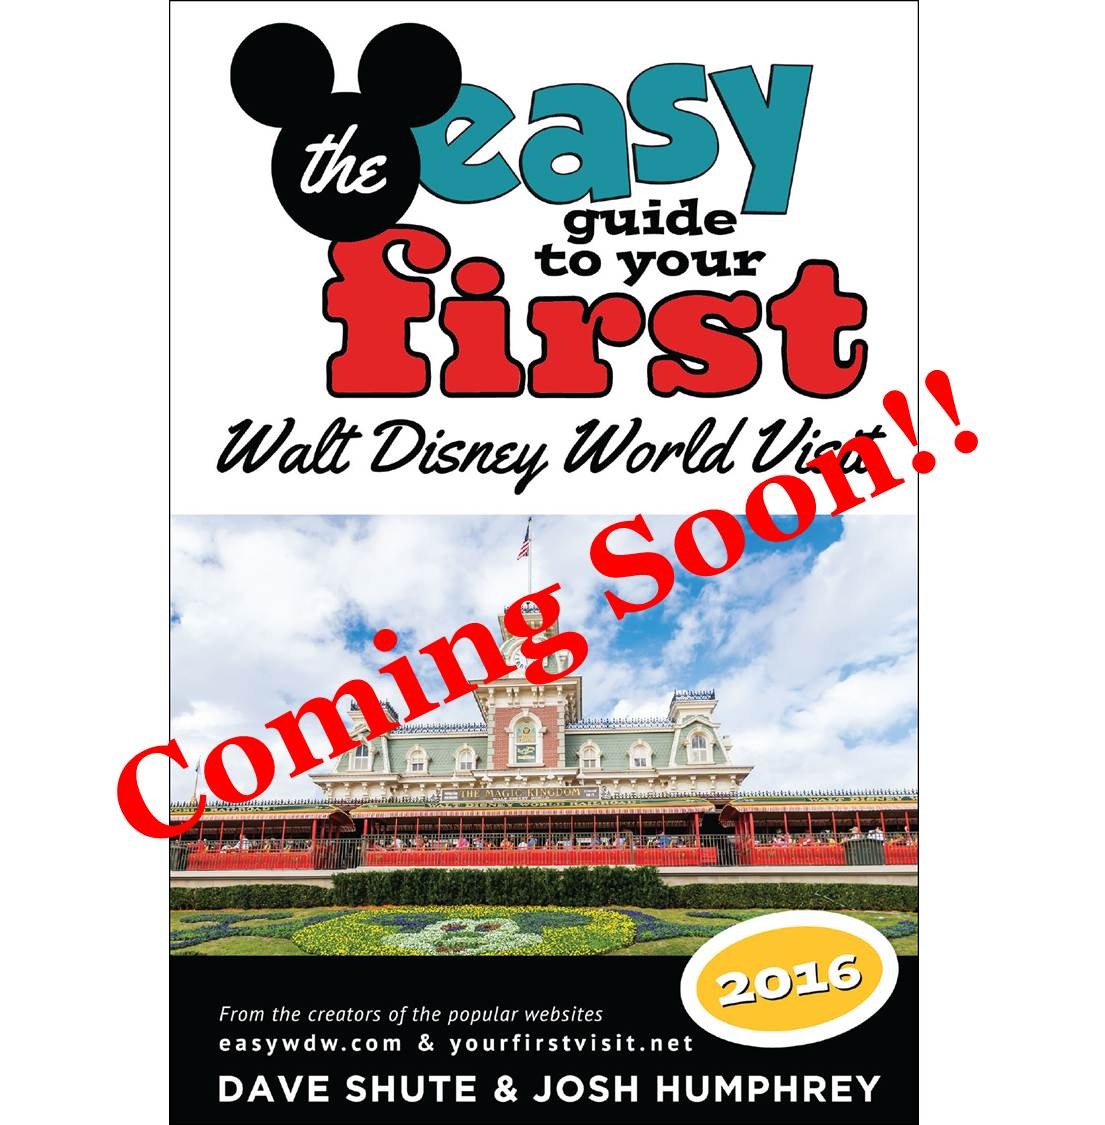 Coming Soon - The easy Guide for 2016